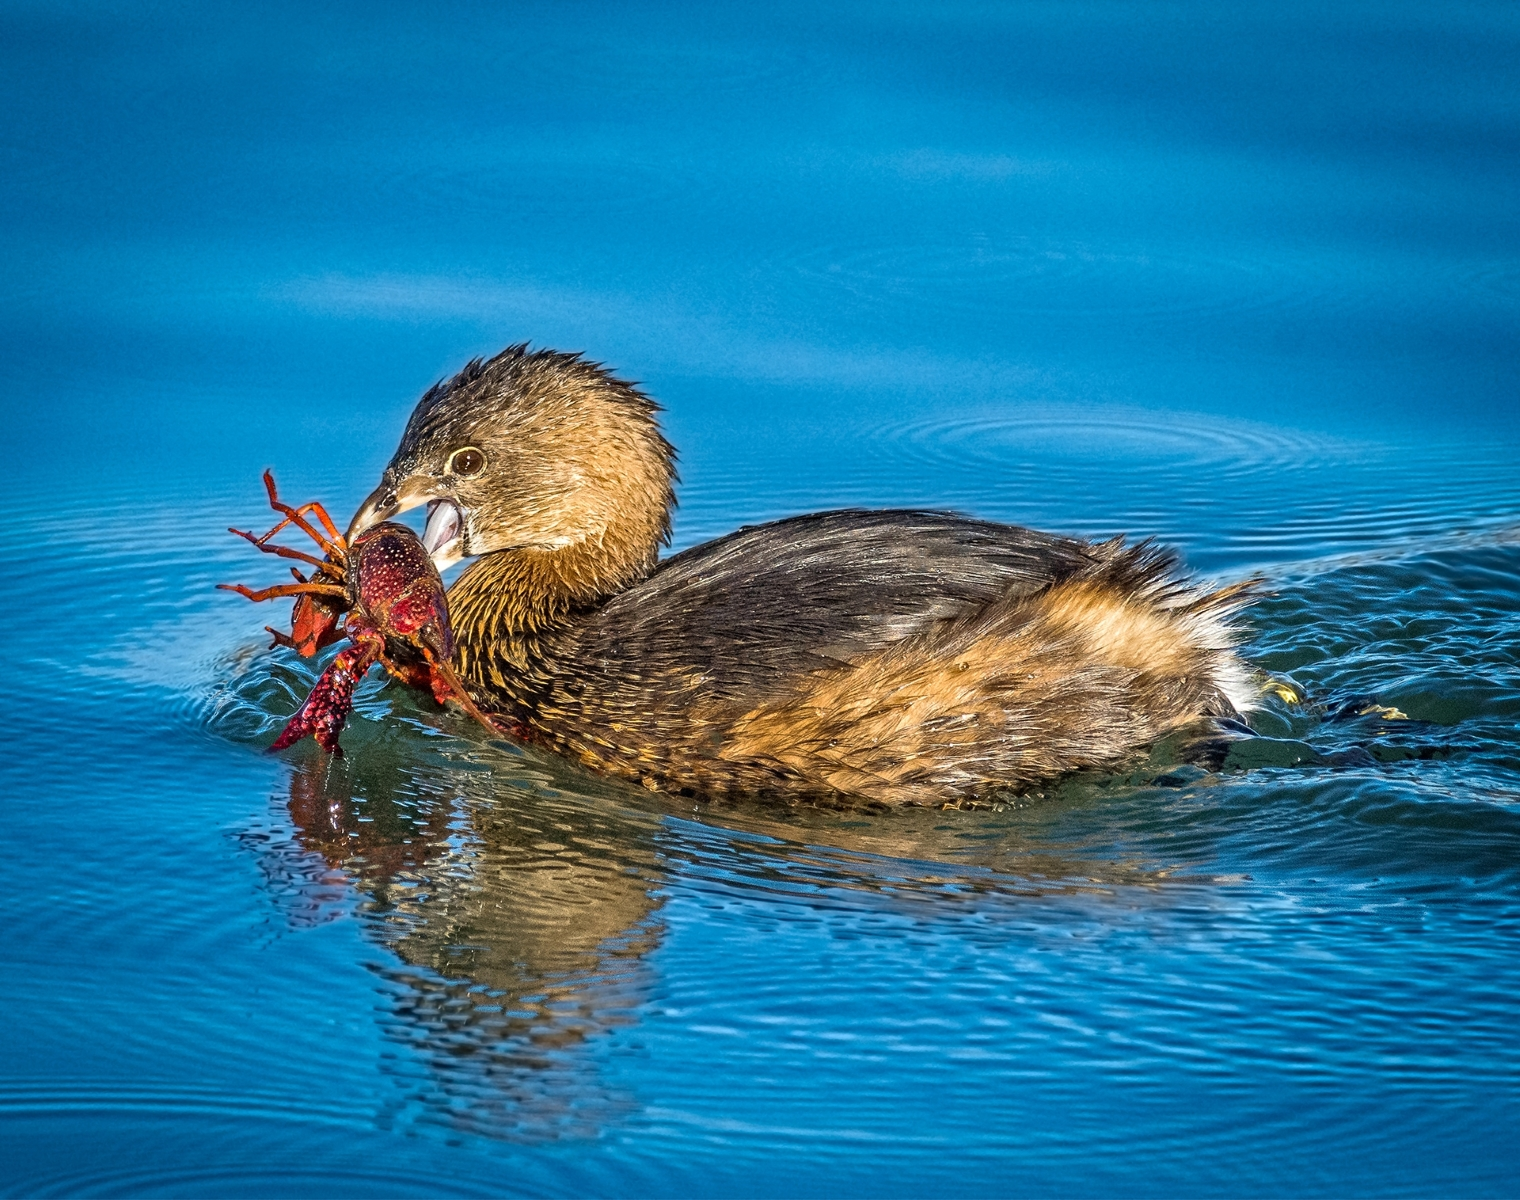 'A Pied-billed Grebe Swims Off With its Prized Catch- A Crayfish.' (NB 1 Place) by Dennis Rashe - LV